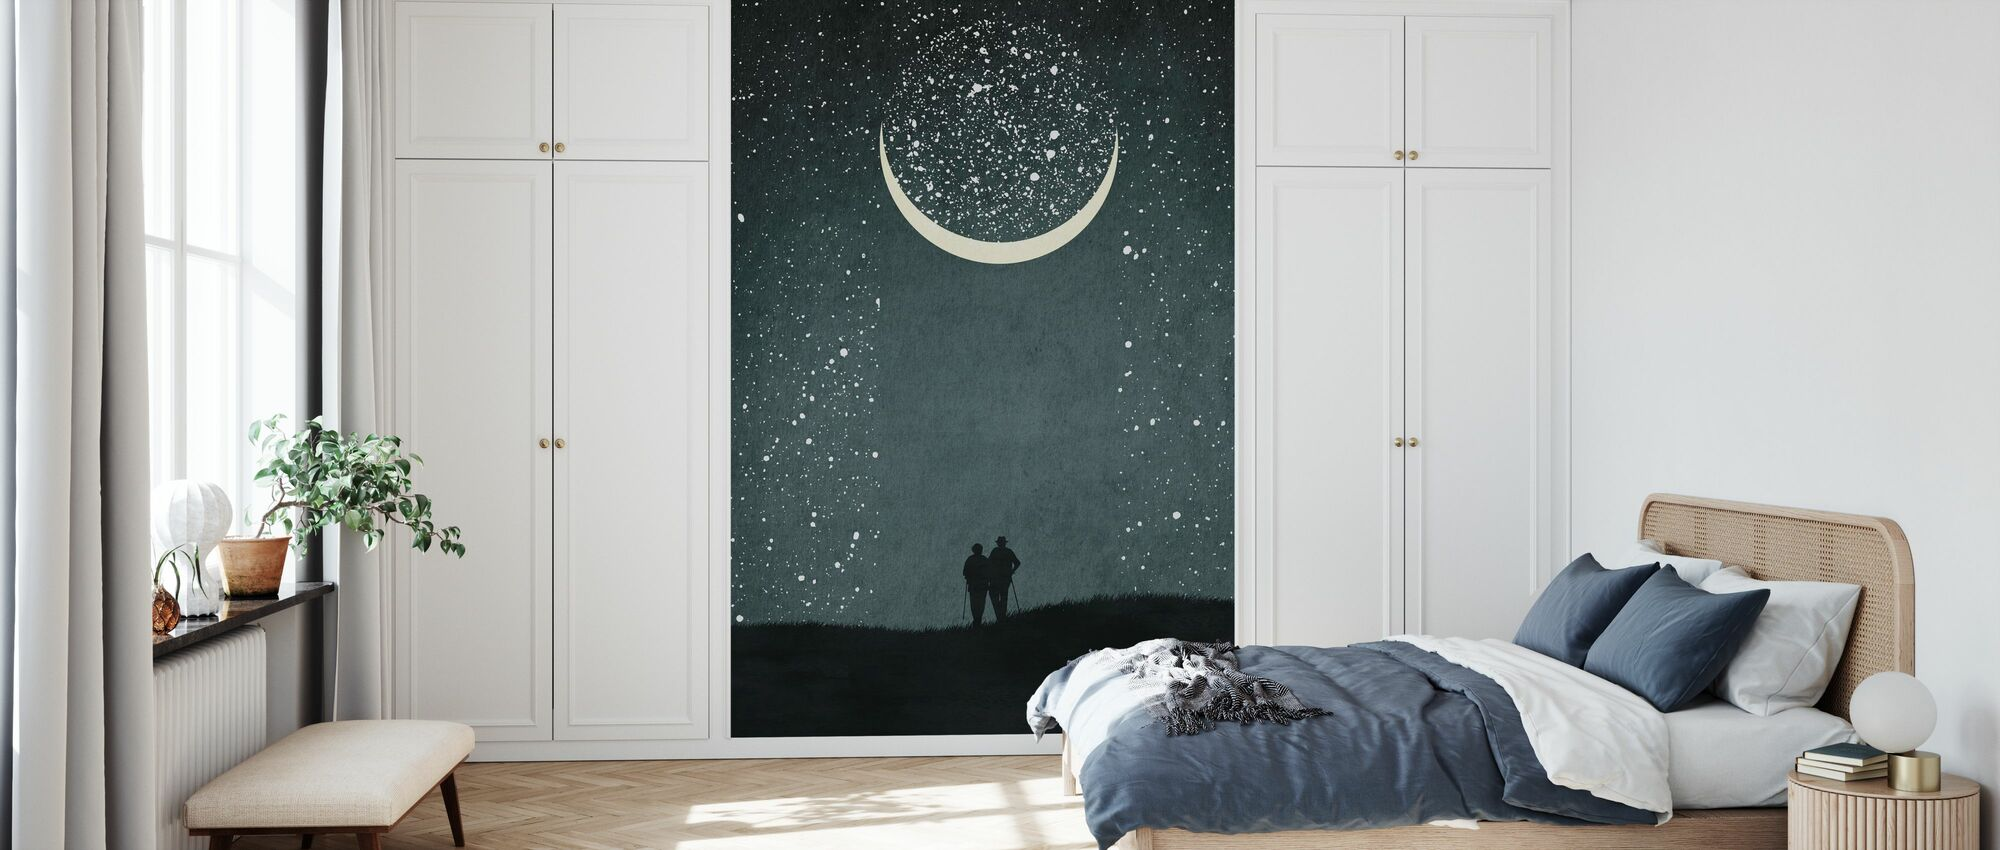 Dreaming with You - Wallpaper - Bedroom